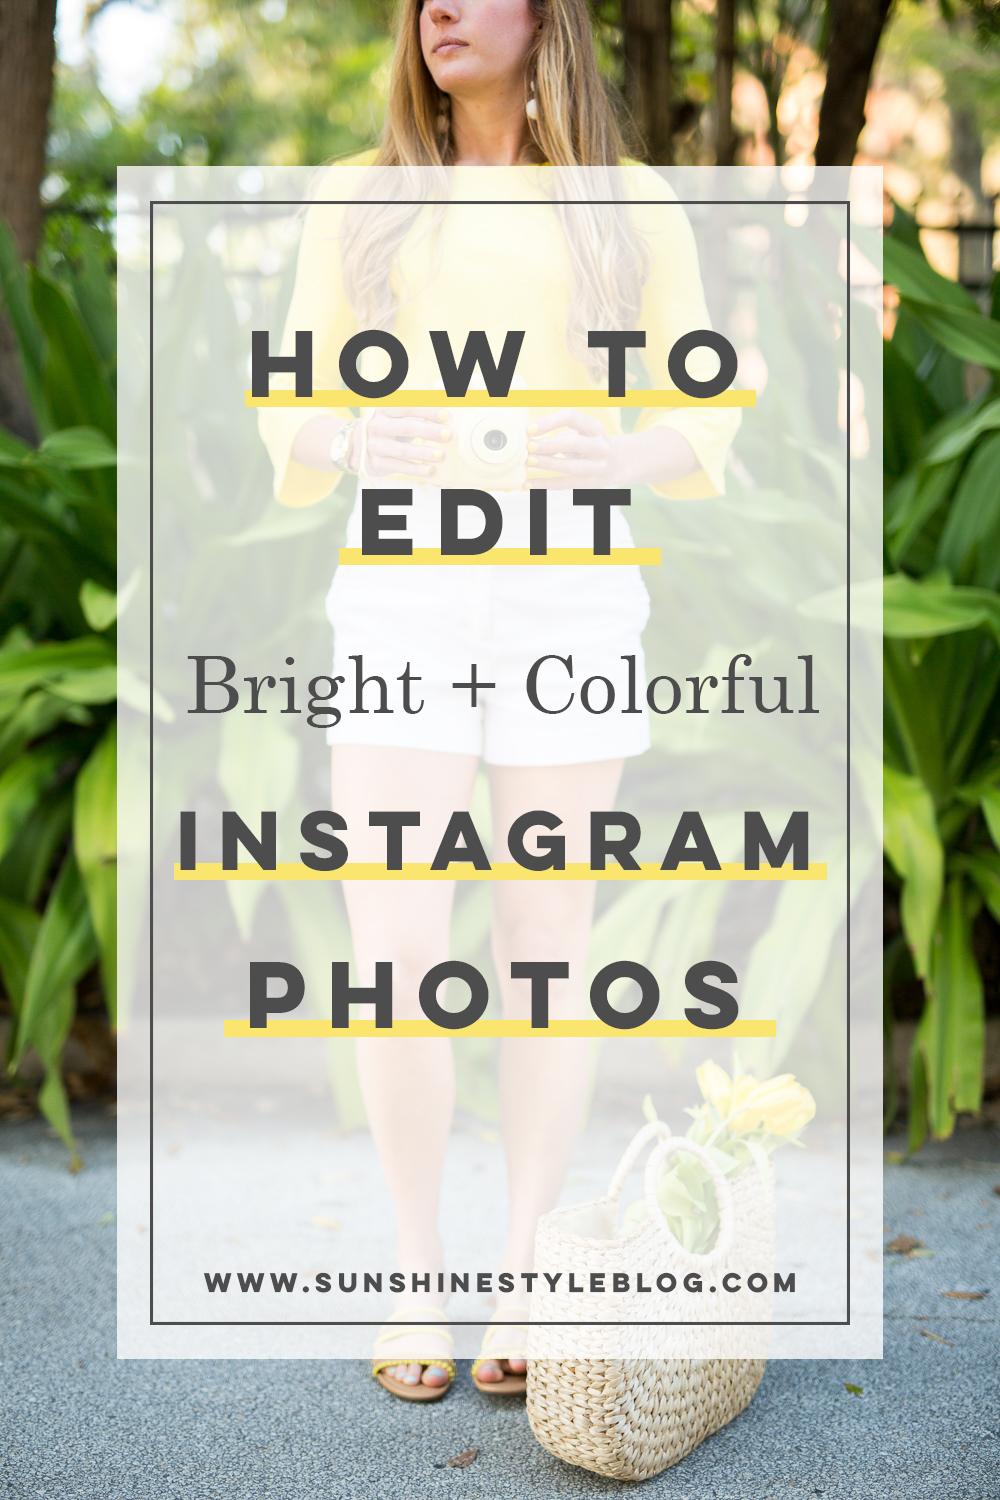 How to Edit Bright and Colorful Instagram Photos | How to Create a Consistent Instagram Feed | How to Edit Bright + Colorful Instagram Photos | How to Edit Bright and Airy Photos | How to Edit iPhone Photos for Instagram - Sunshine Style